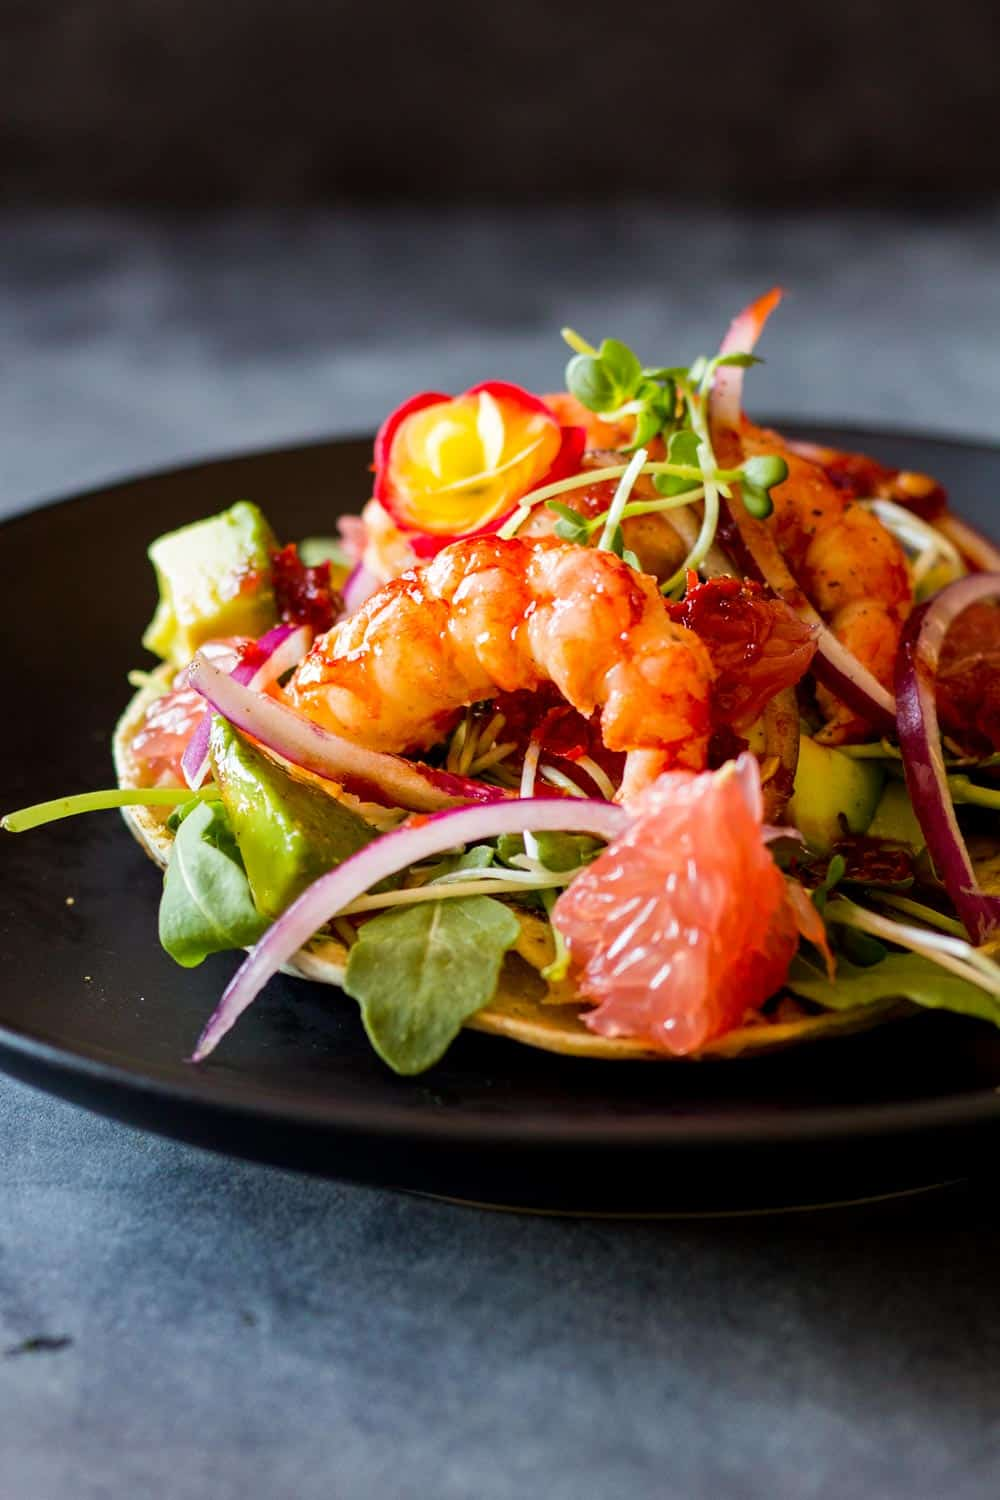 15-Minute Shrimp Tostadas, the perfect dinner for busy workdays! Crunchy tostada, fresh arugula, creamy avocado, juicy grapefruit, delicious shrimps and sweet-and-sour red chilli sauce. WOAH!